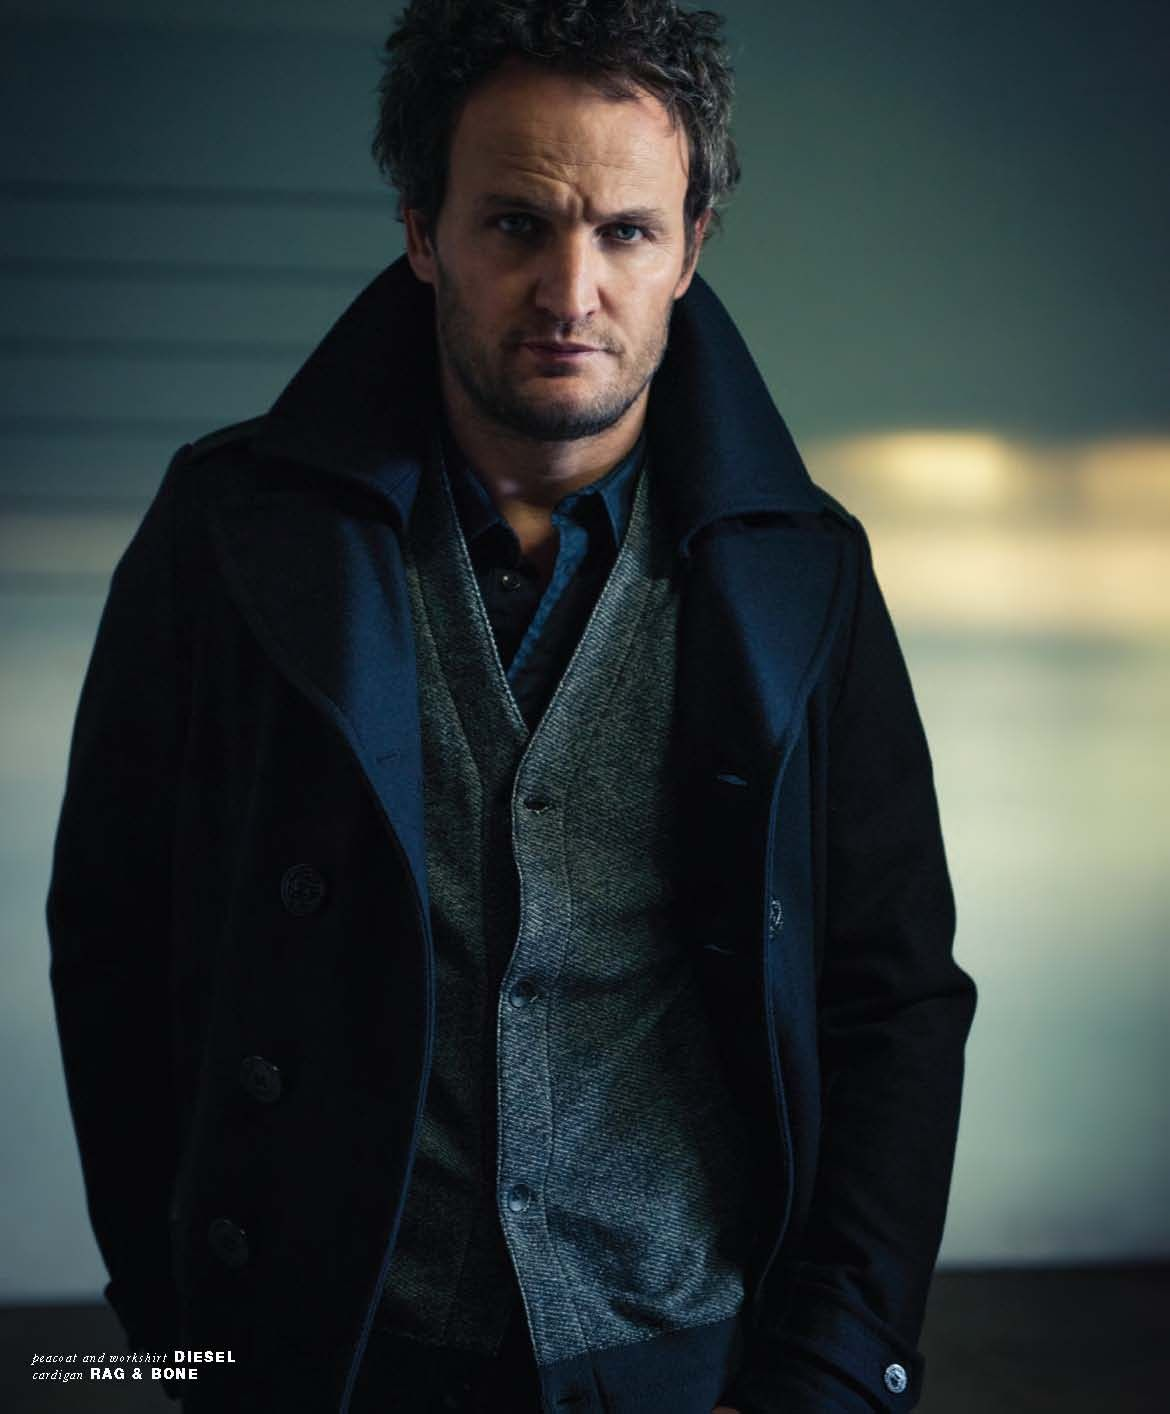 jason clarke instagram